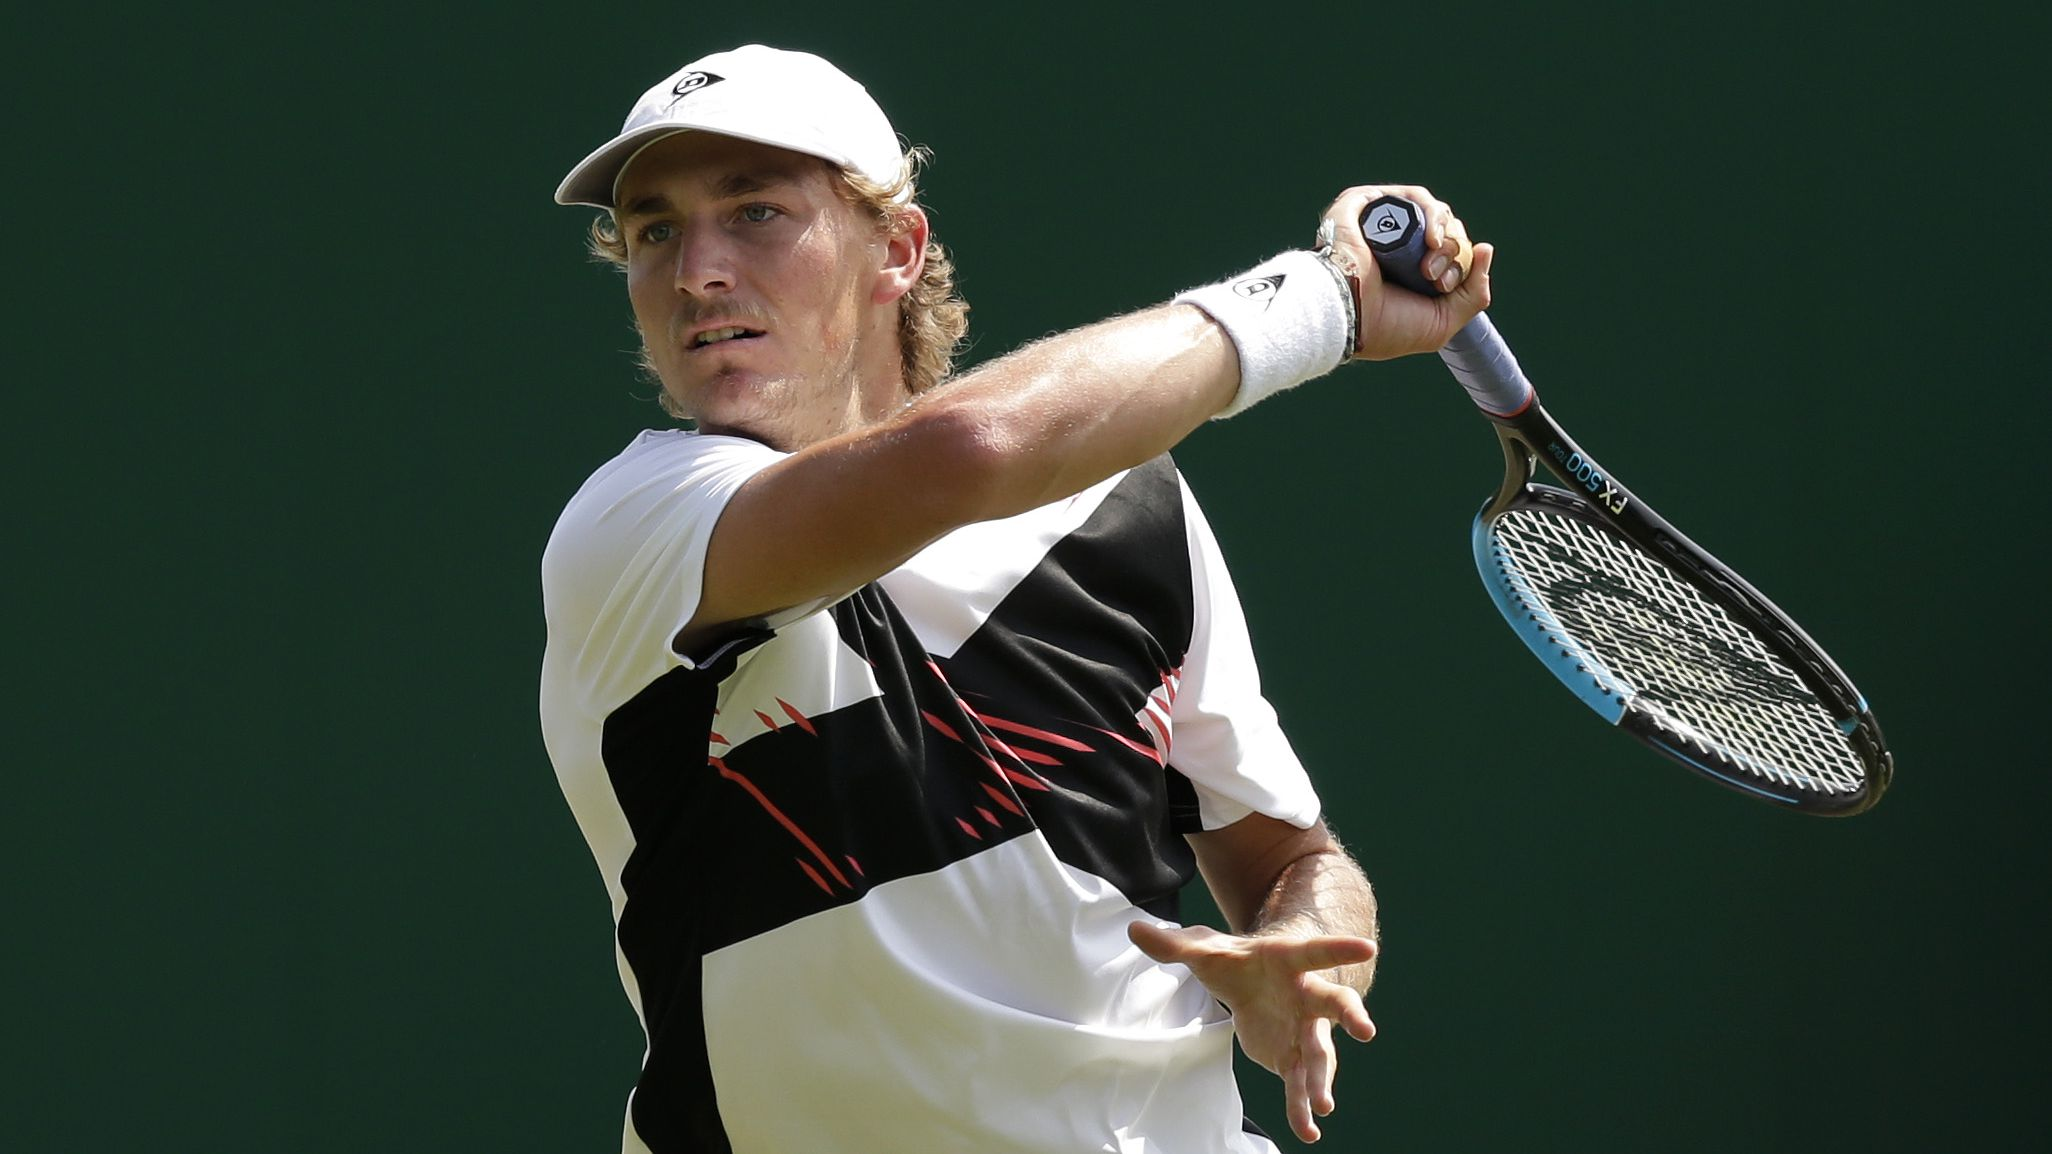 Aussie Max Purcell makes ATP history, among two 'lucky losers' in semi-finals of same tournament for 1st time